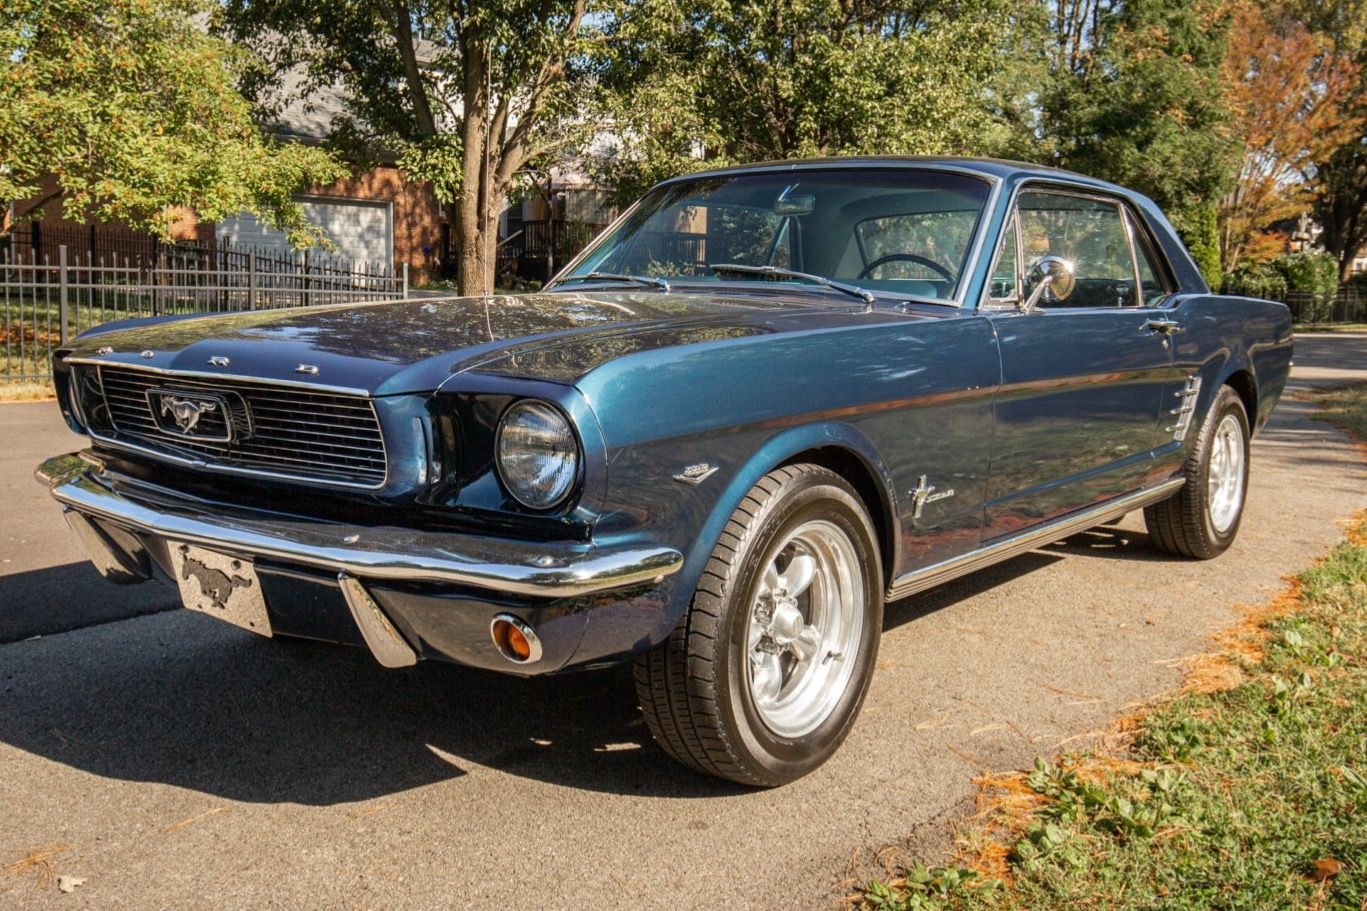 1966 Ford Mustang In 2020 1966 Ford Mustang Ford Mustang Mustang Coupe